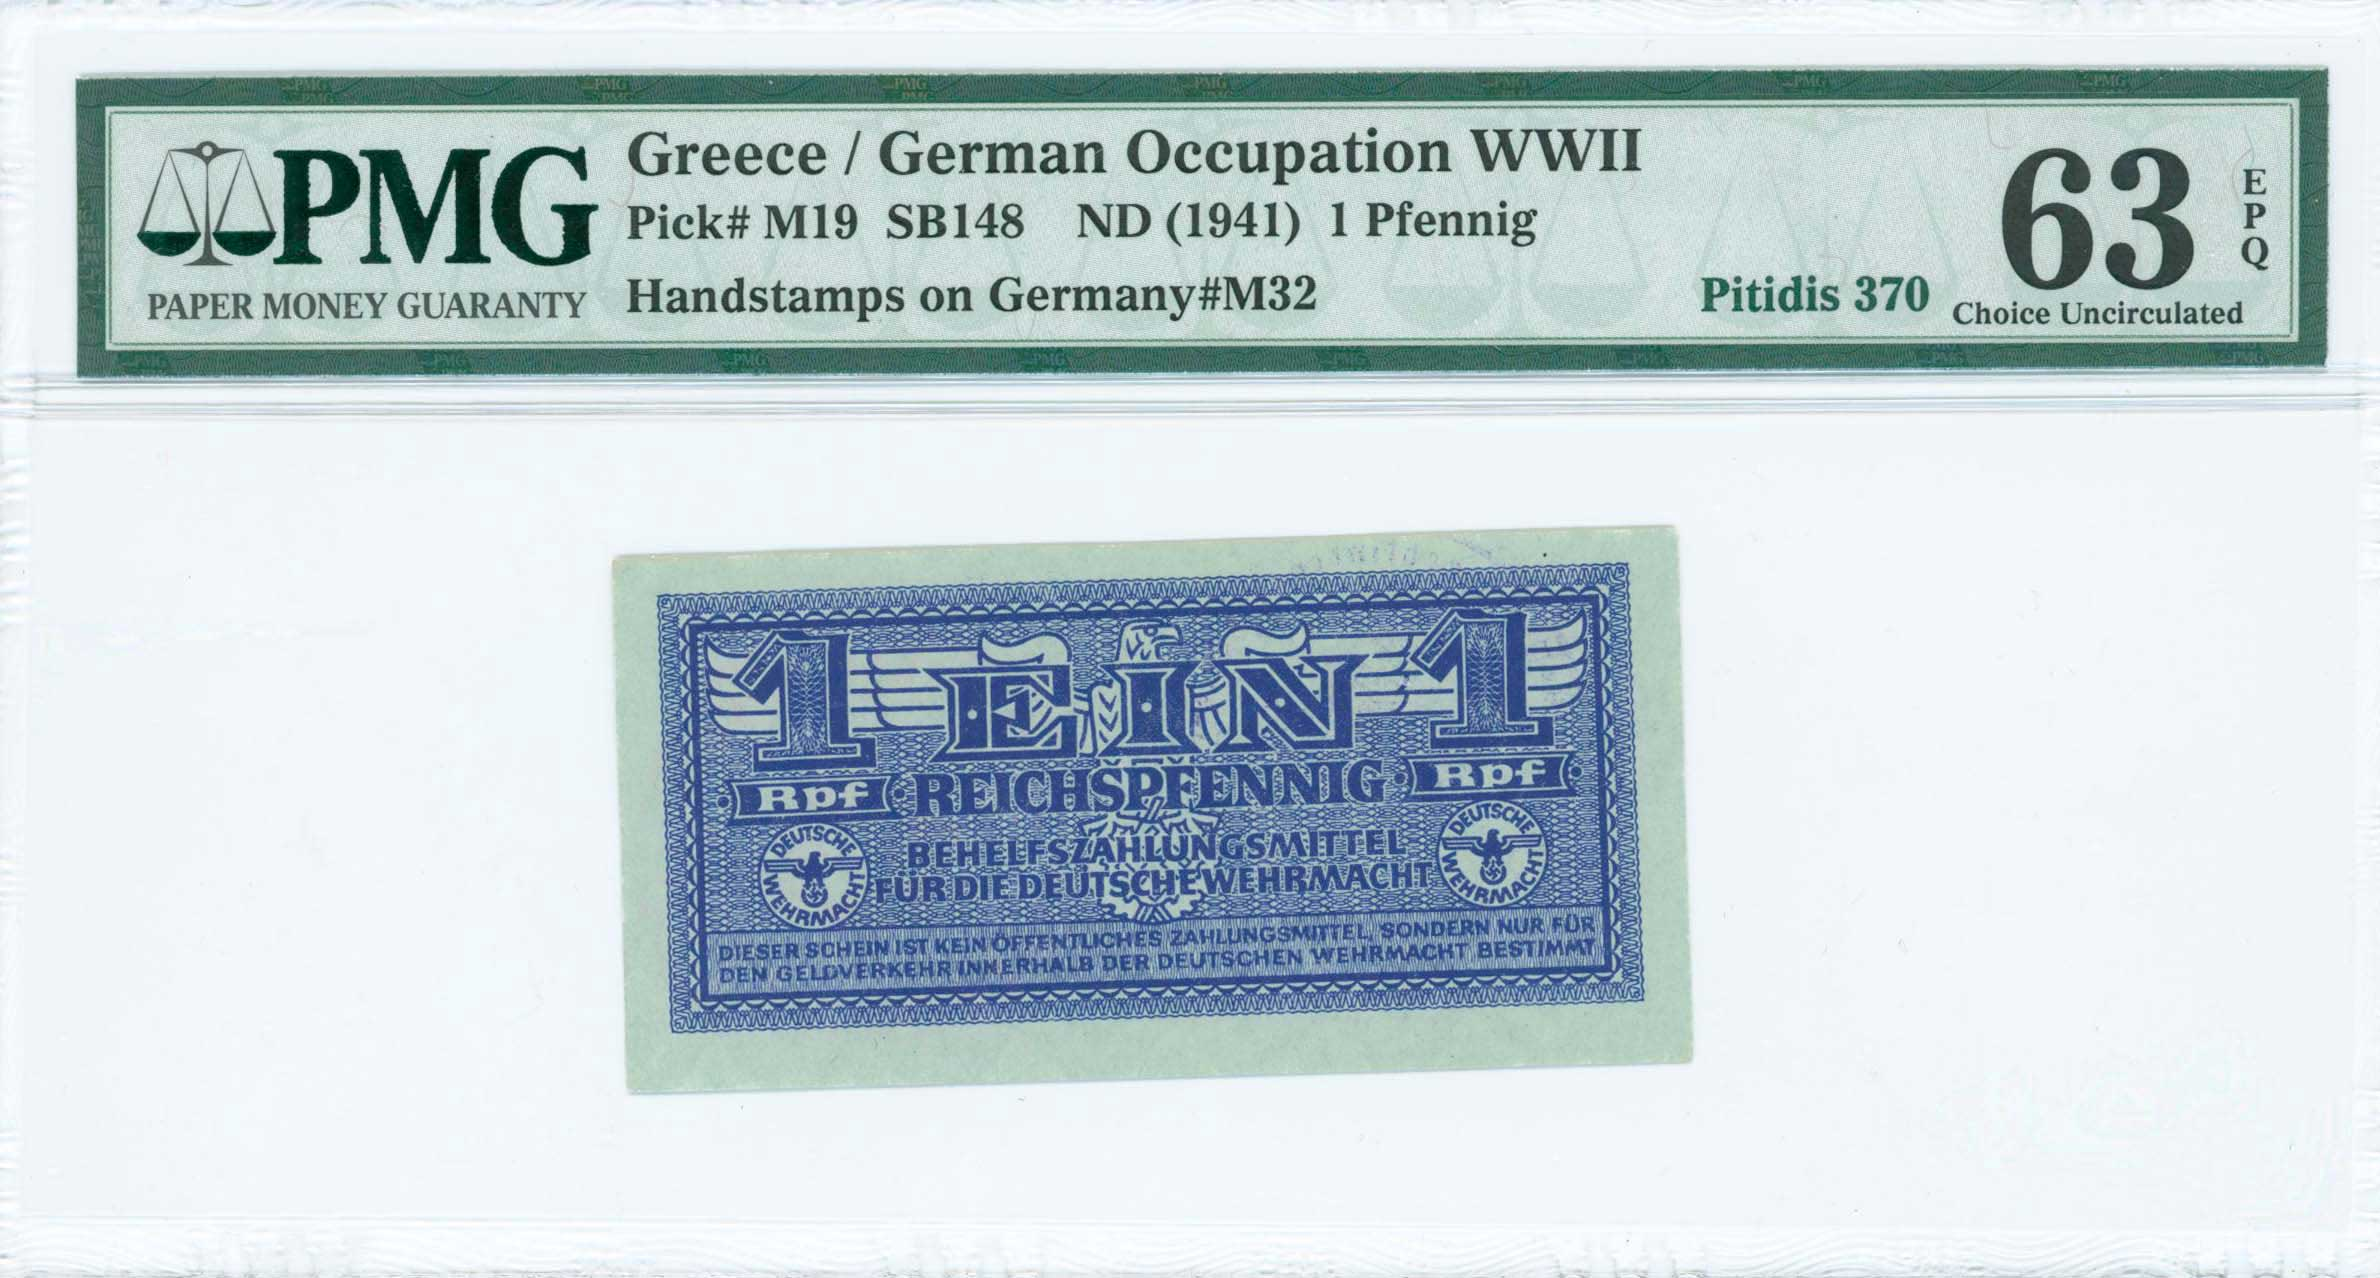 Lot 8558 - -  PAPER MONEY - BANKNOTES german occupation wwii -  A. Karamitsos Public & Live Bid Auction 649 Coins, Medals & Banknotes